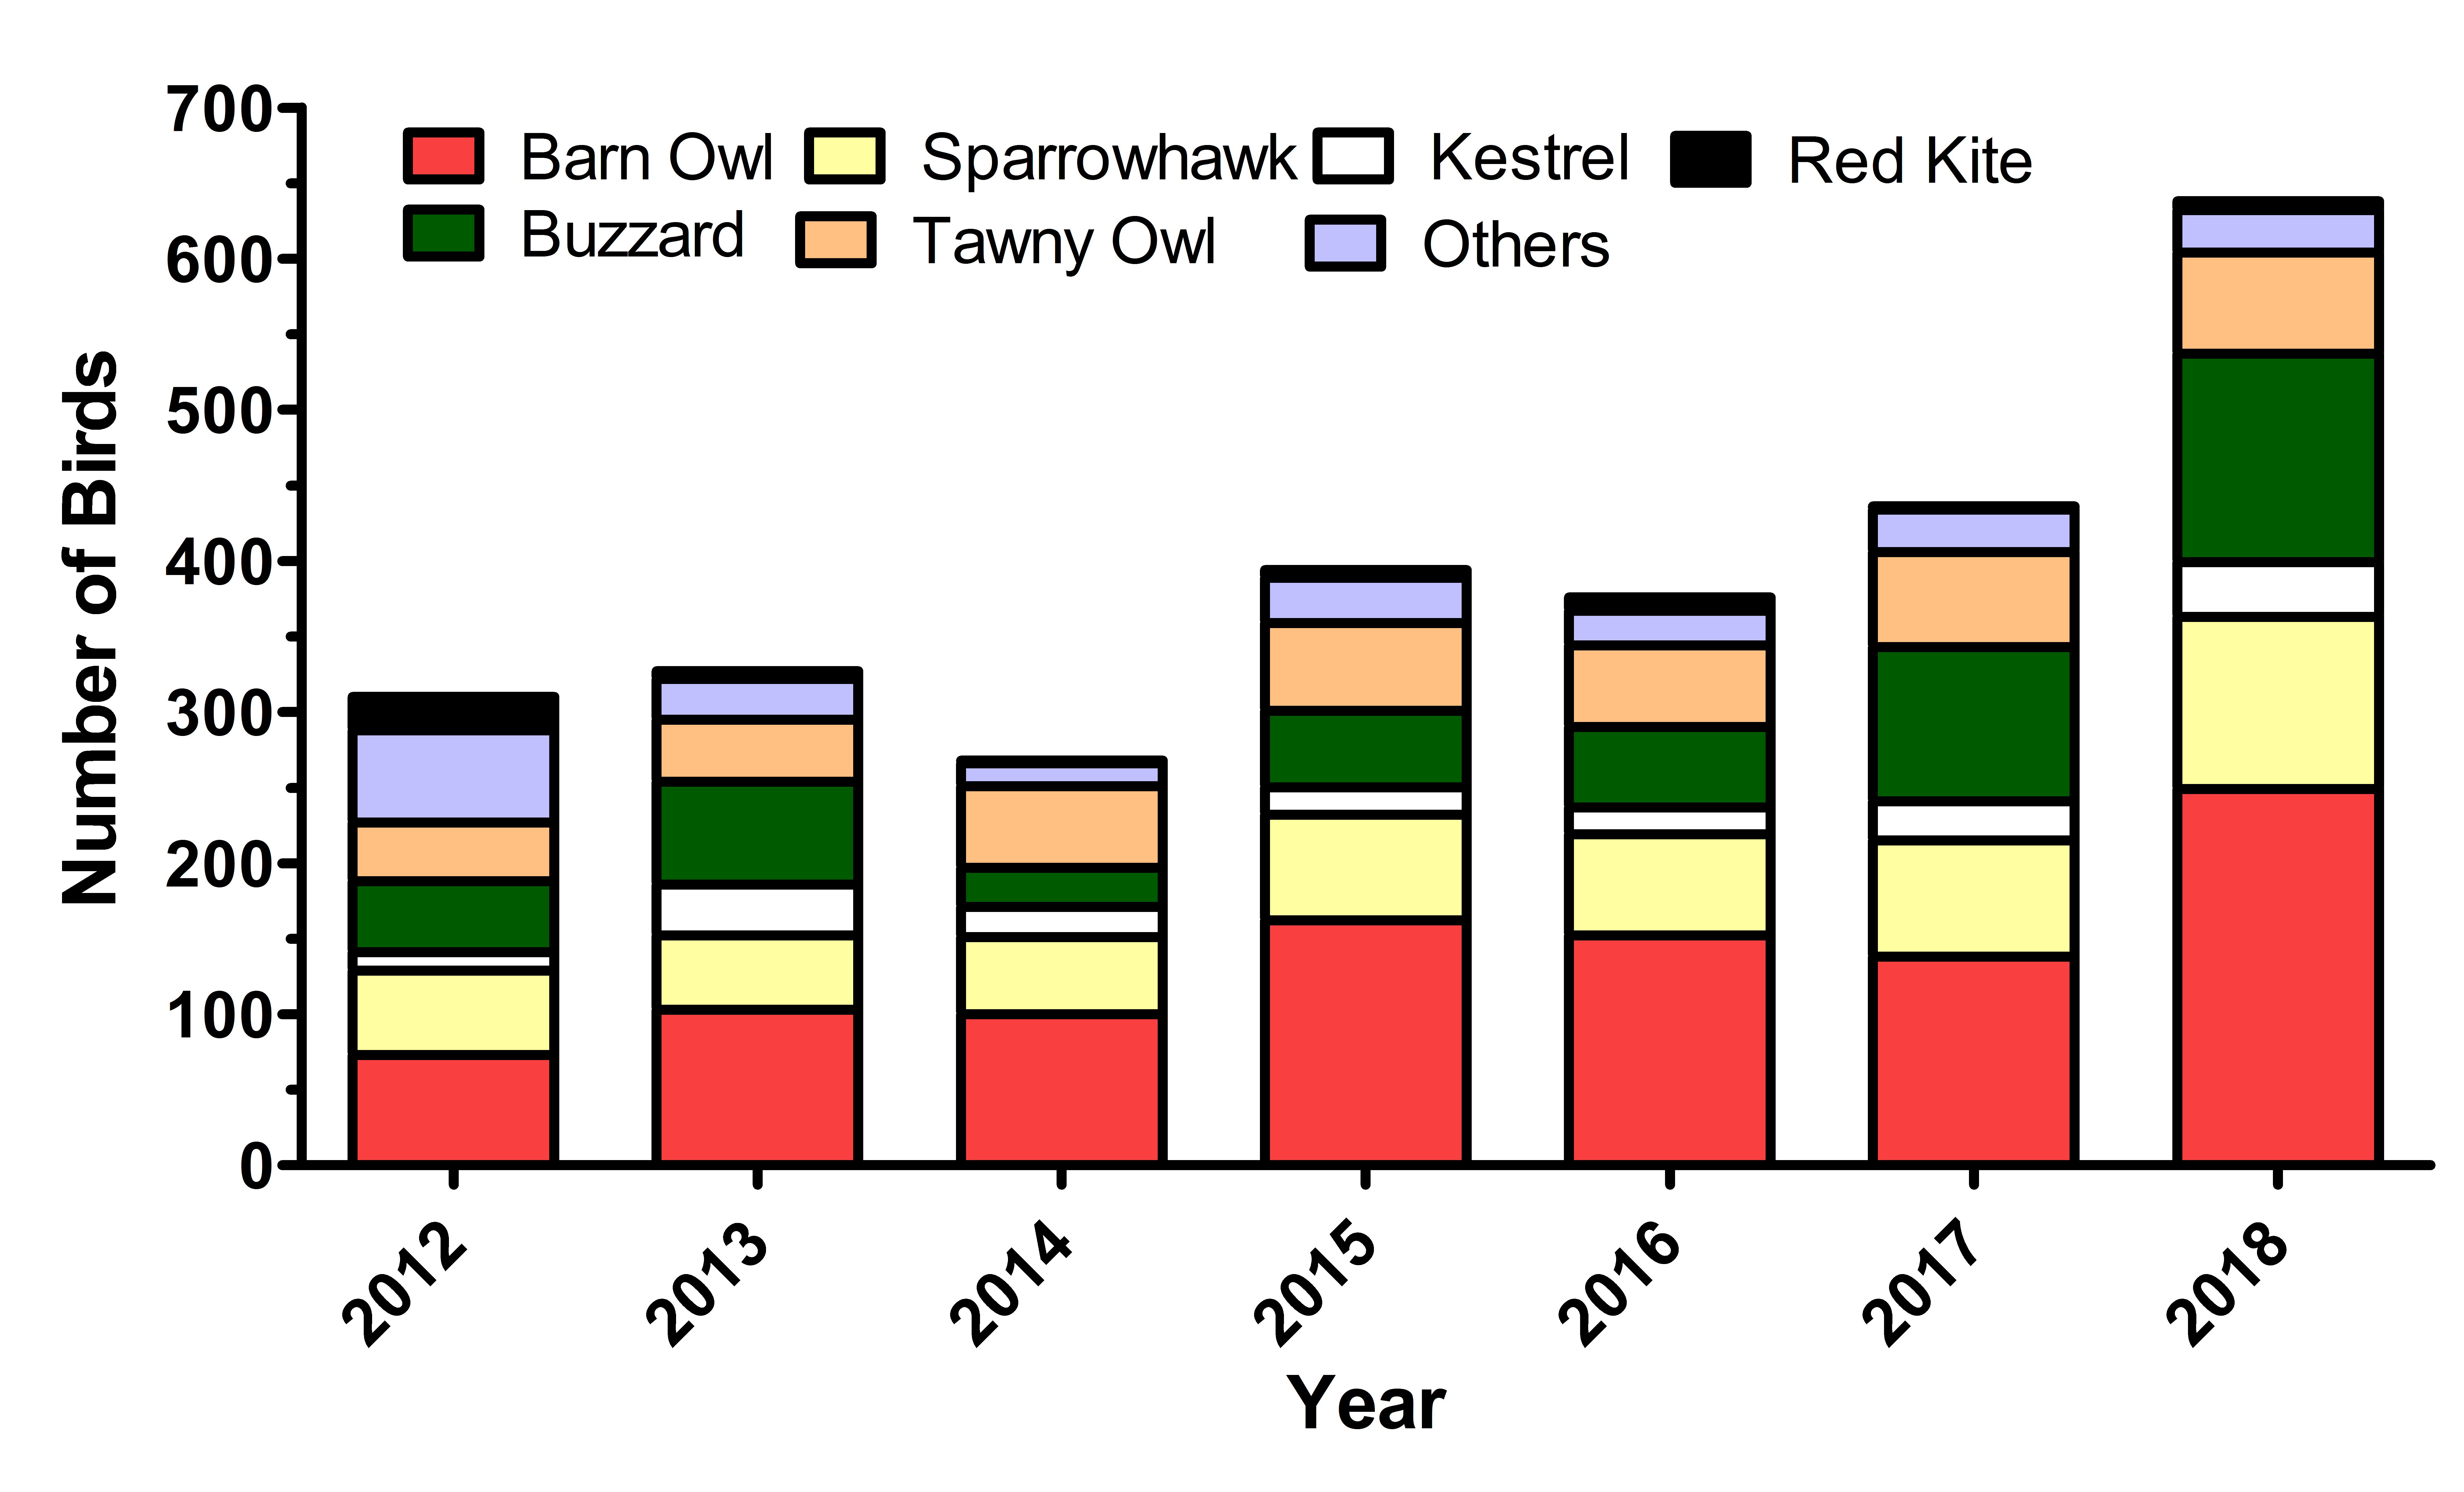 Graph showing birds by Collection Year 2012 to 2018